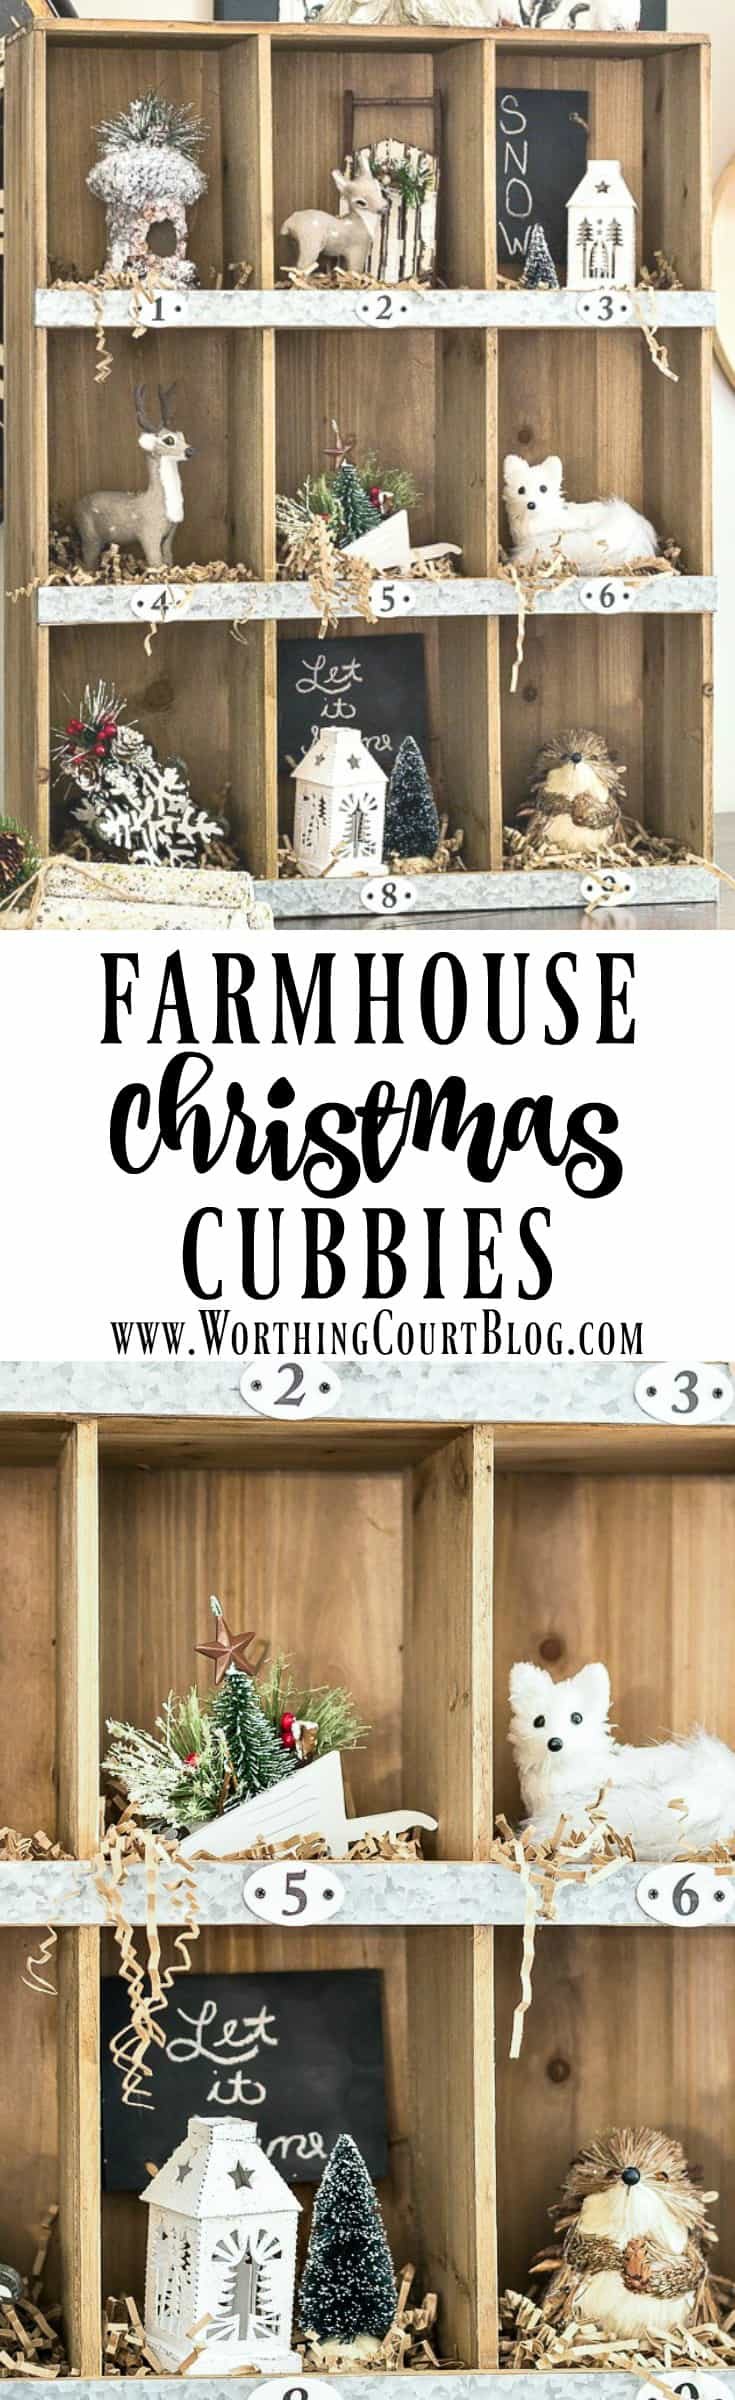 Rustic farmhouse style cubbies filled with tree ornaments for Christmas